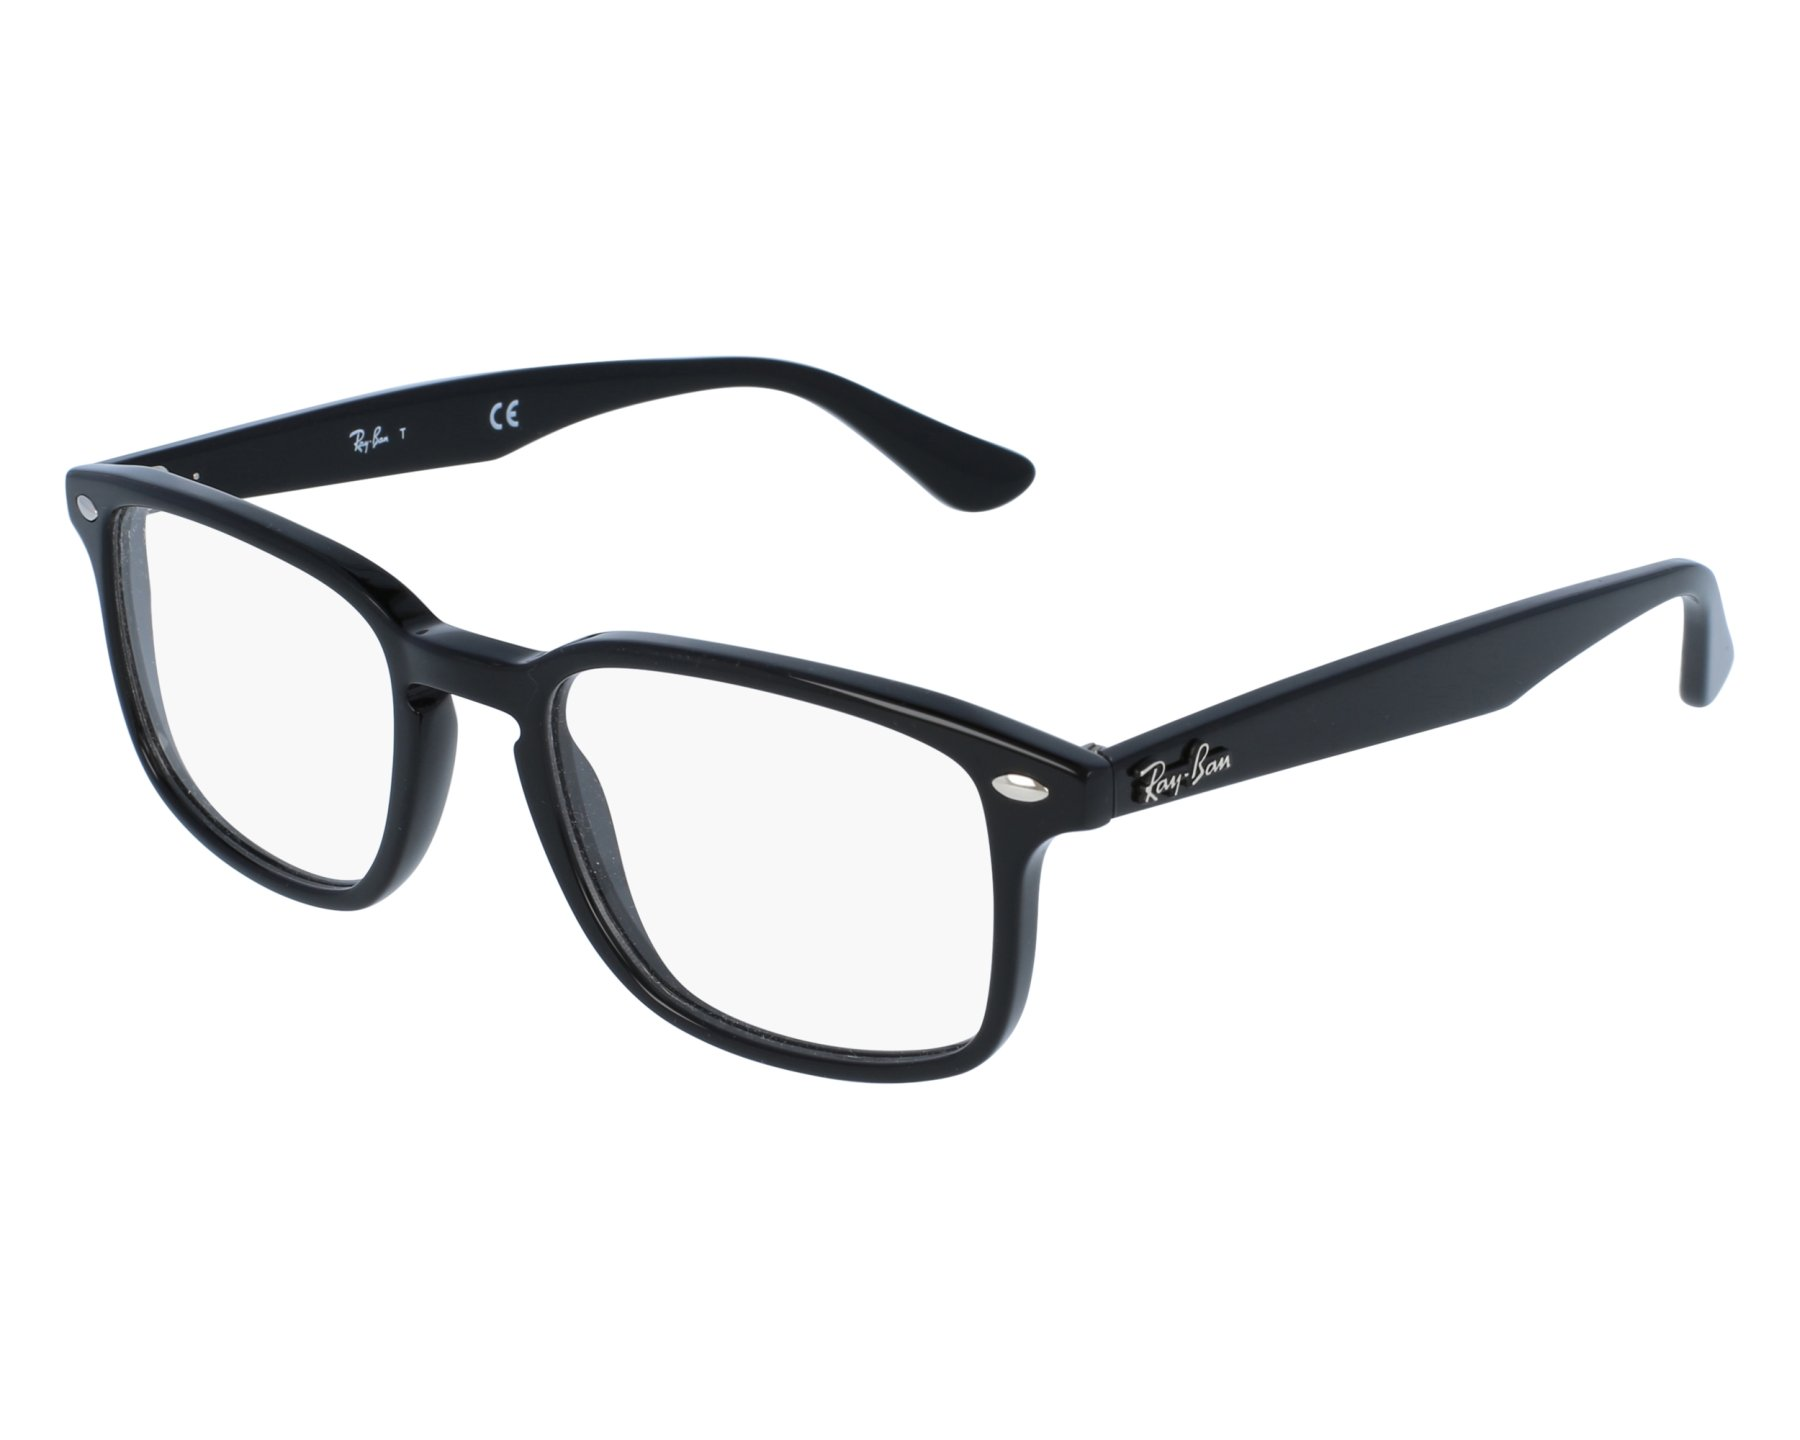 b1882c4993 eyeglasses Ray-Ban RX-5353 2000 50-19 Black front view